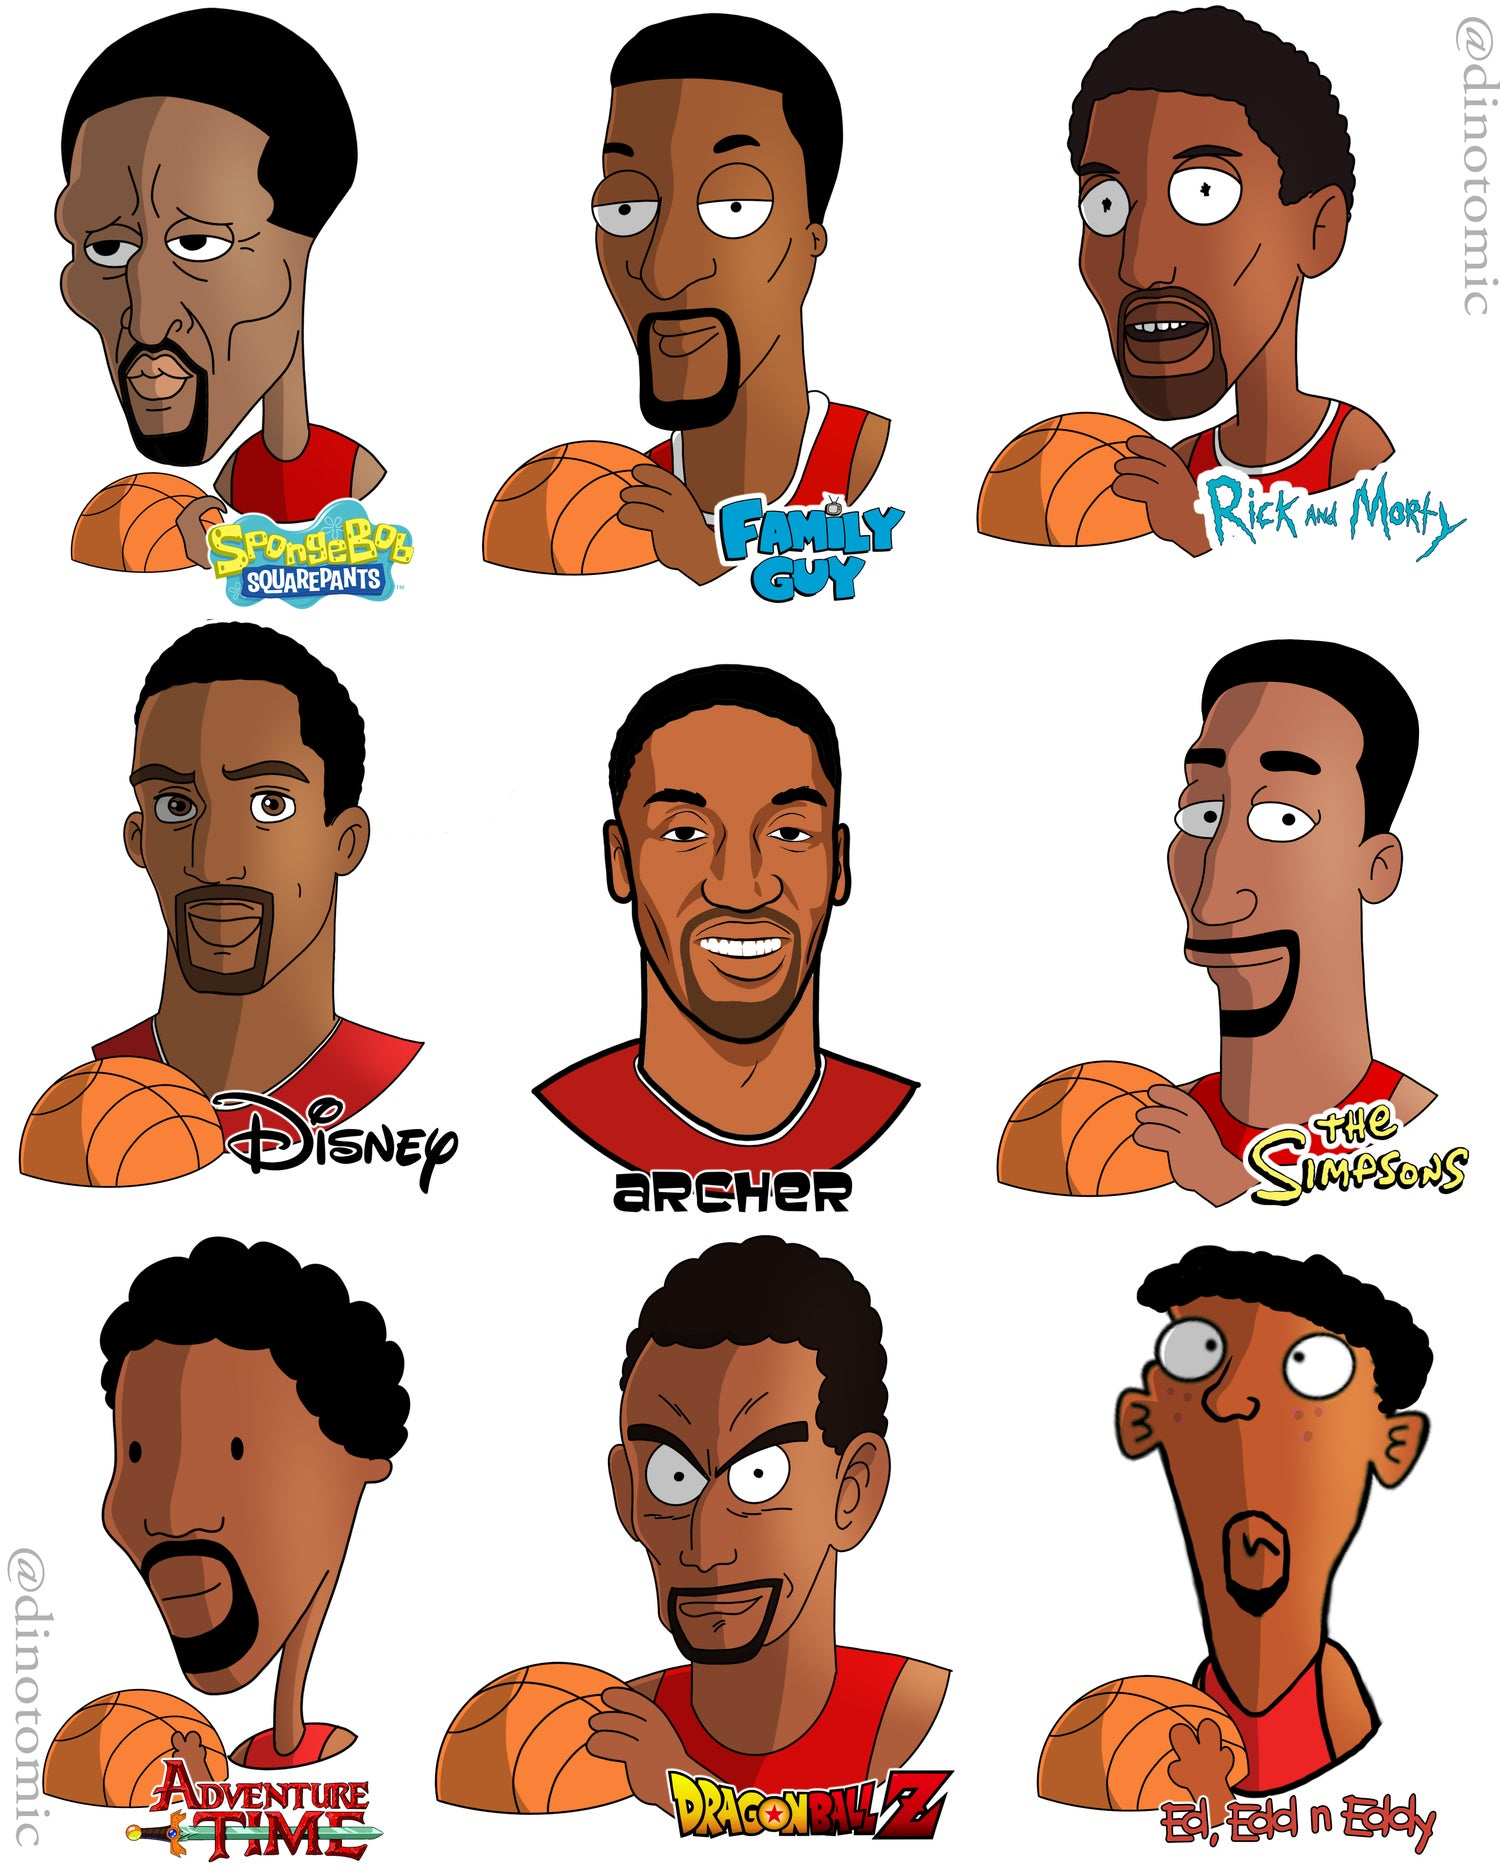 Image of #205 Scottie Pippen  drawn in 9 styles